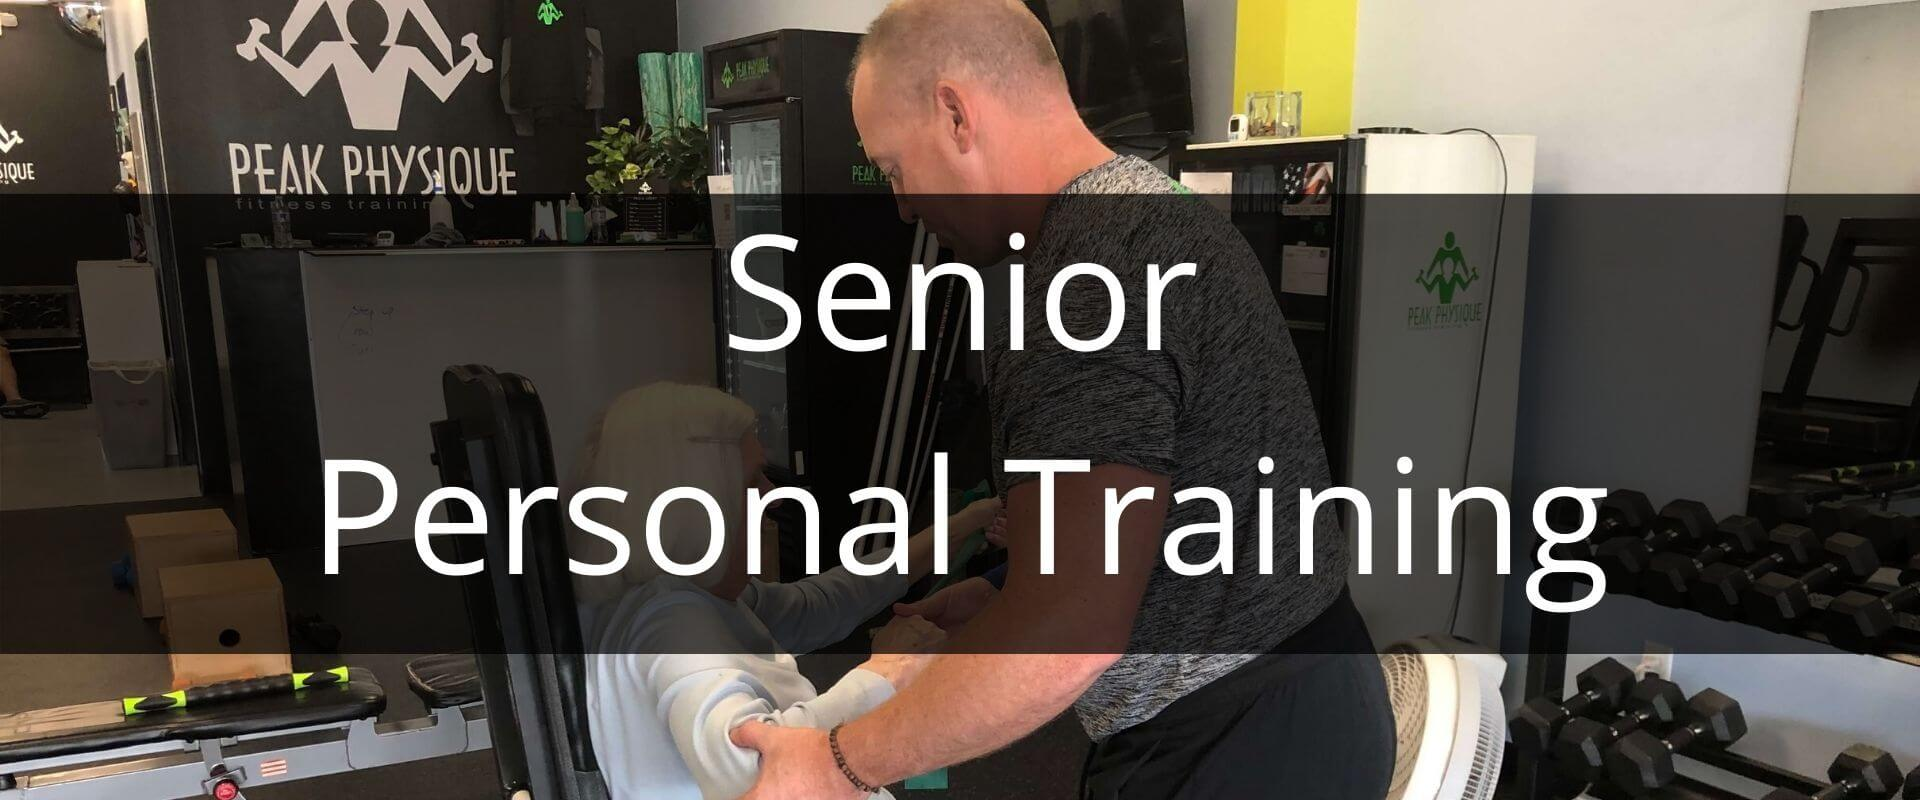 Senior Personal Training Thumbnail